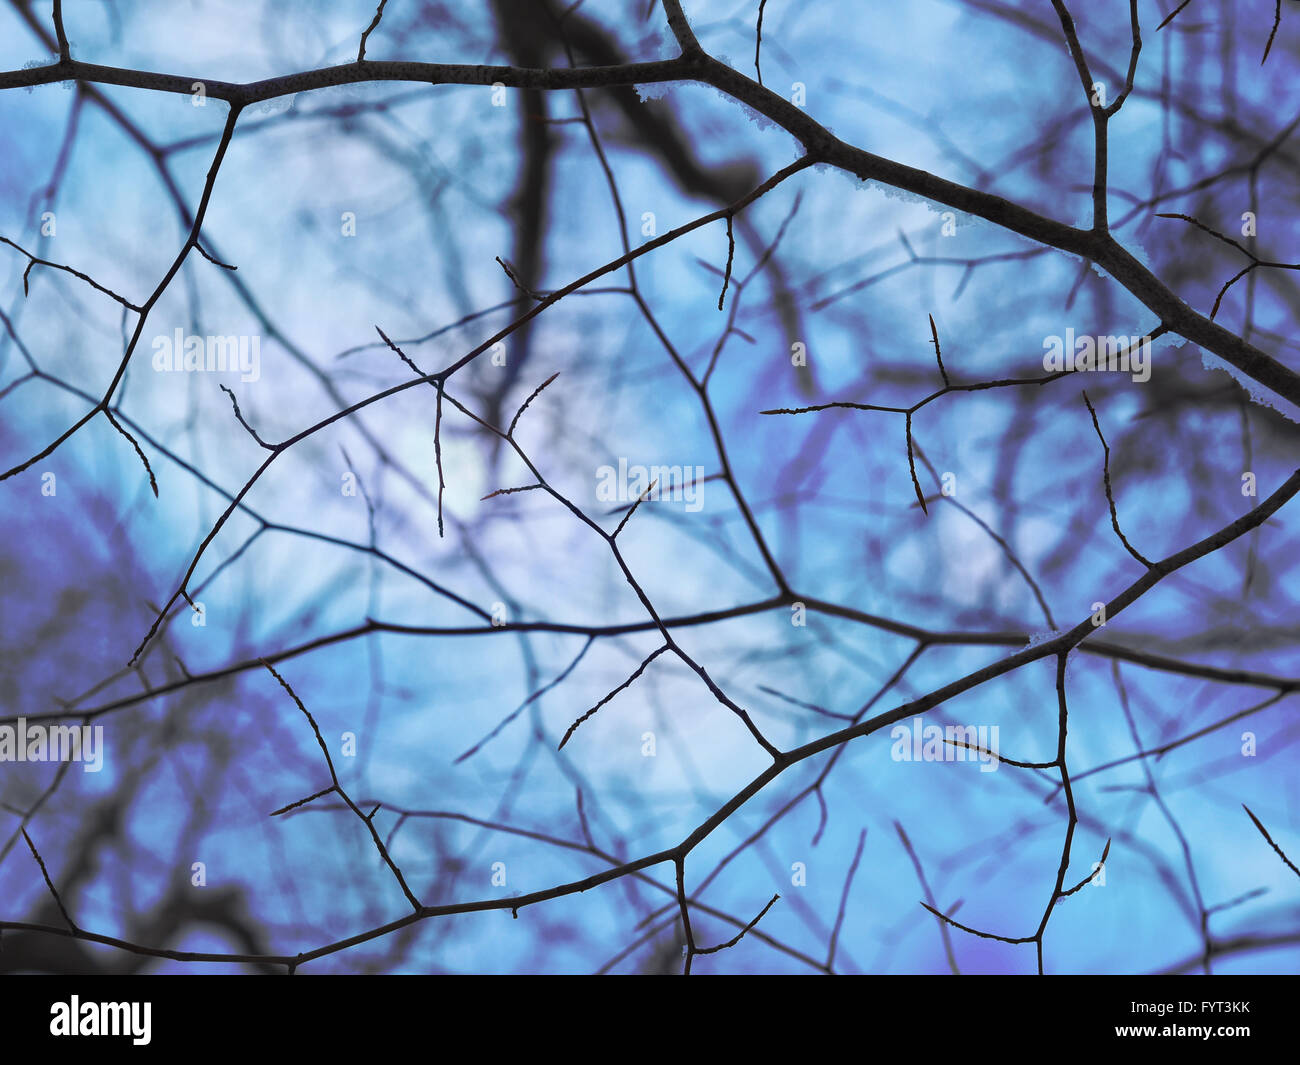 Bare tree branches are against a cold blue winter sky for a seasonal or texture background. There are black lines. Stock Photo